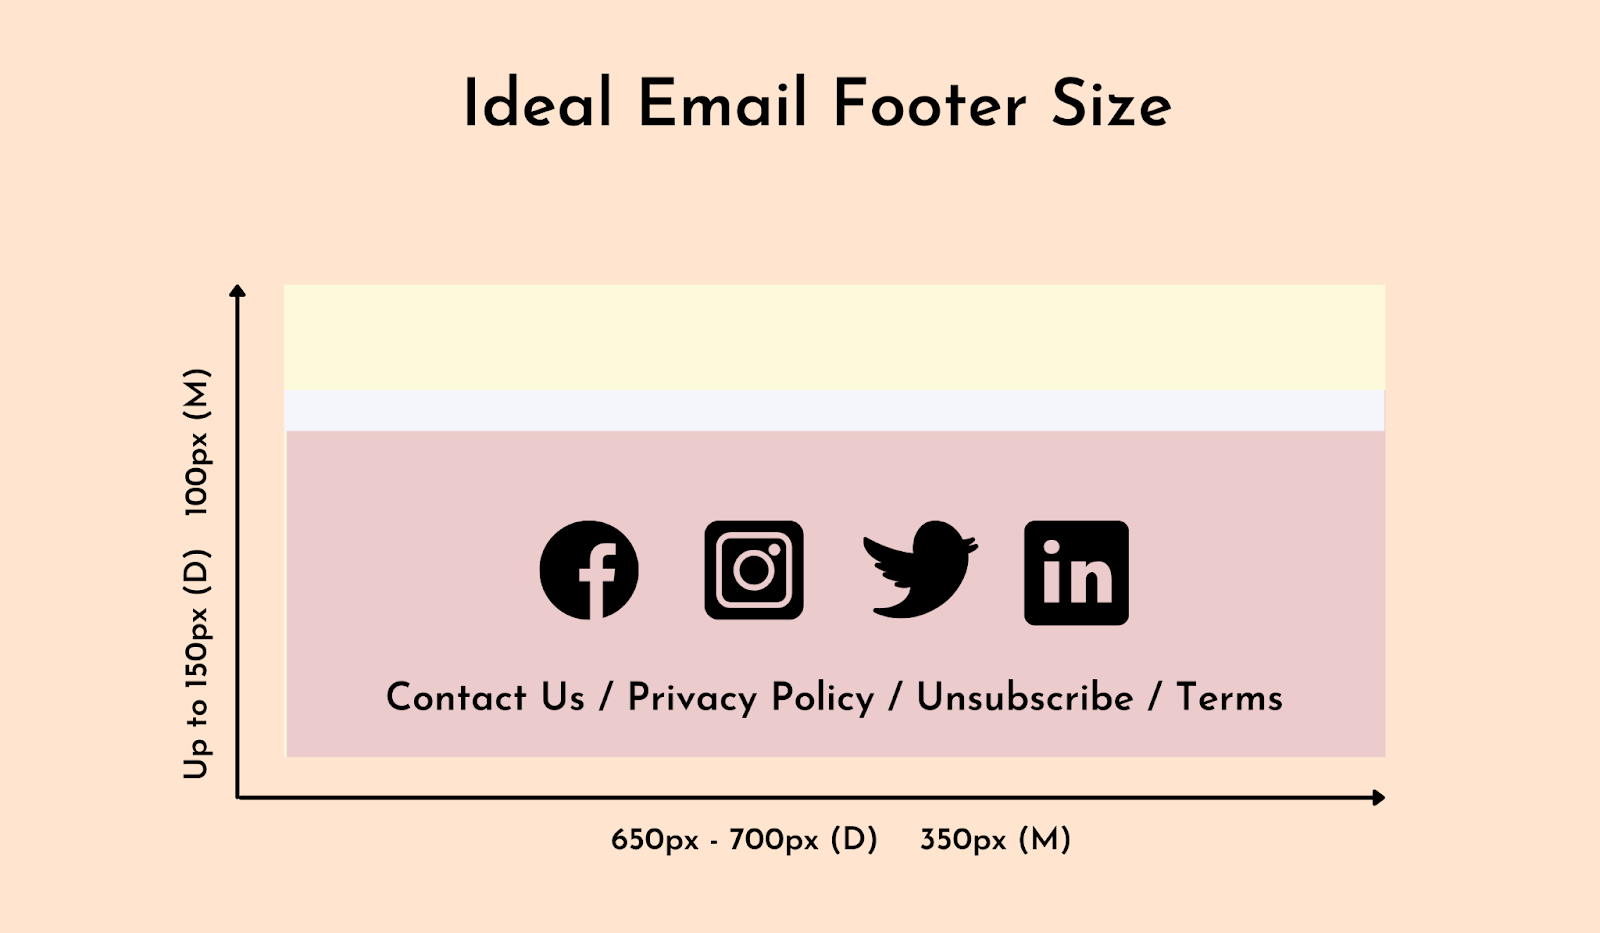 Ideal email footer size